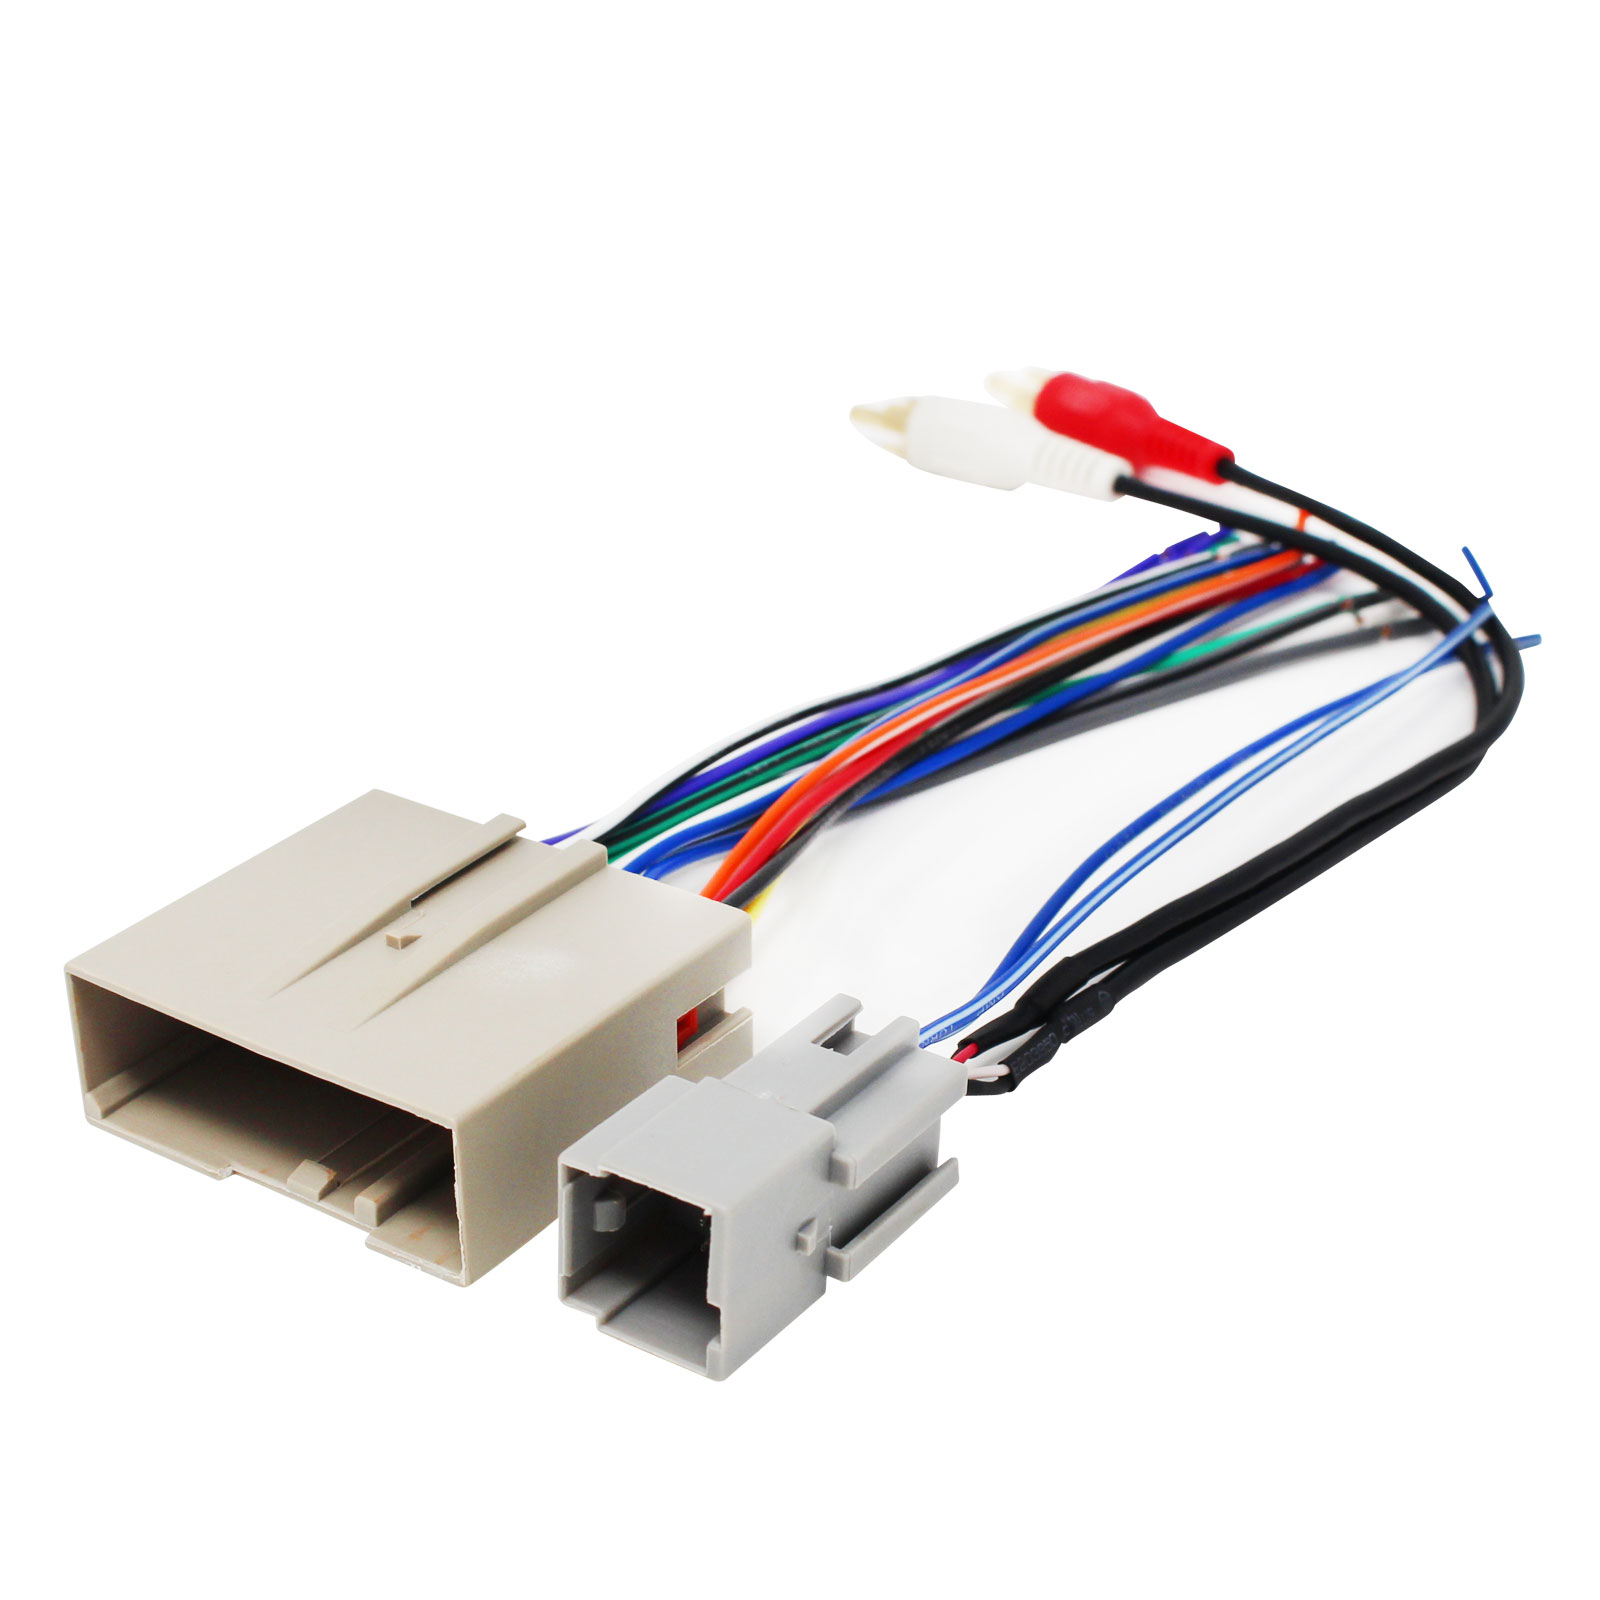 20 Pin Stereo Harness Wiring Diagram Dual Wire Center Pioneer Avic D3 Ford Rh Walmart Com Toyota